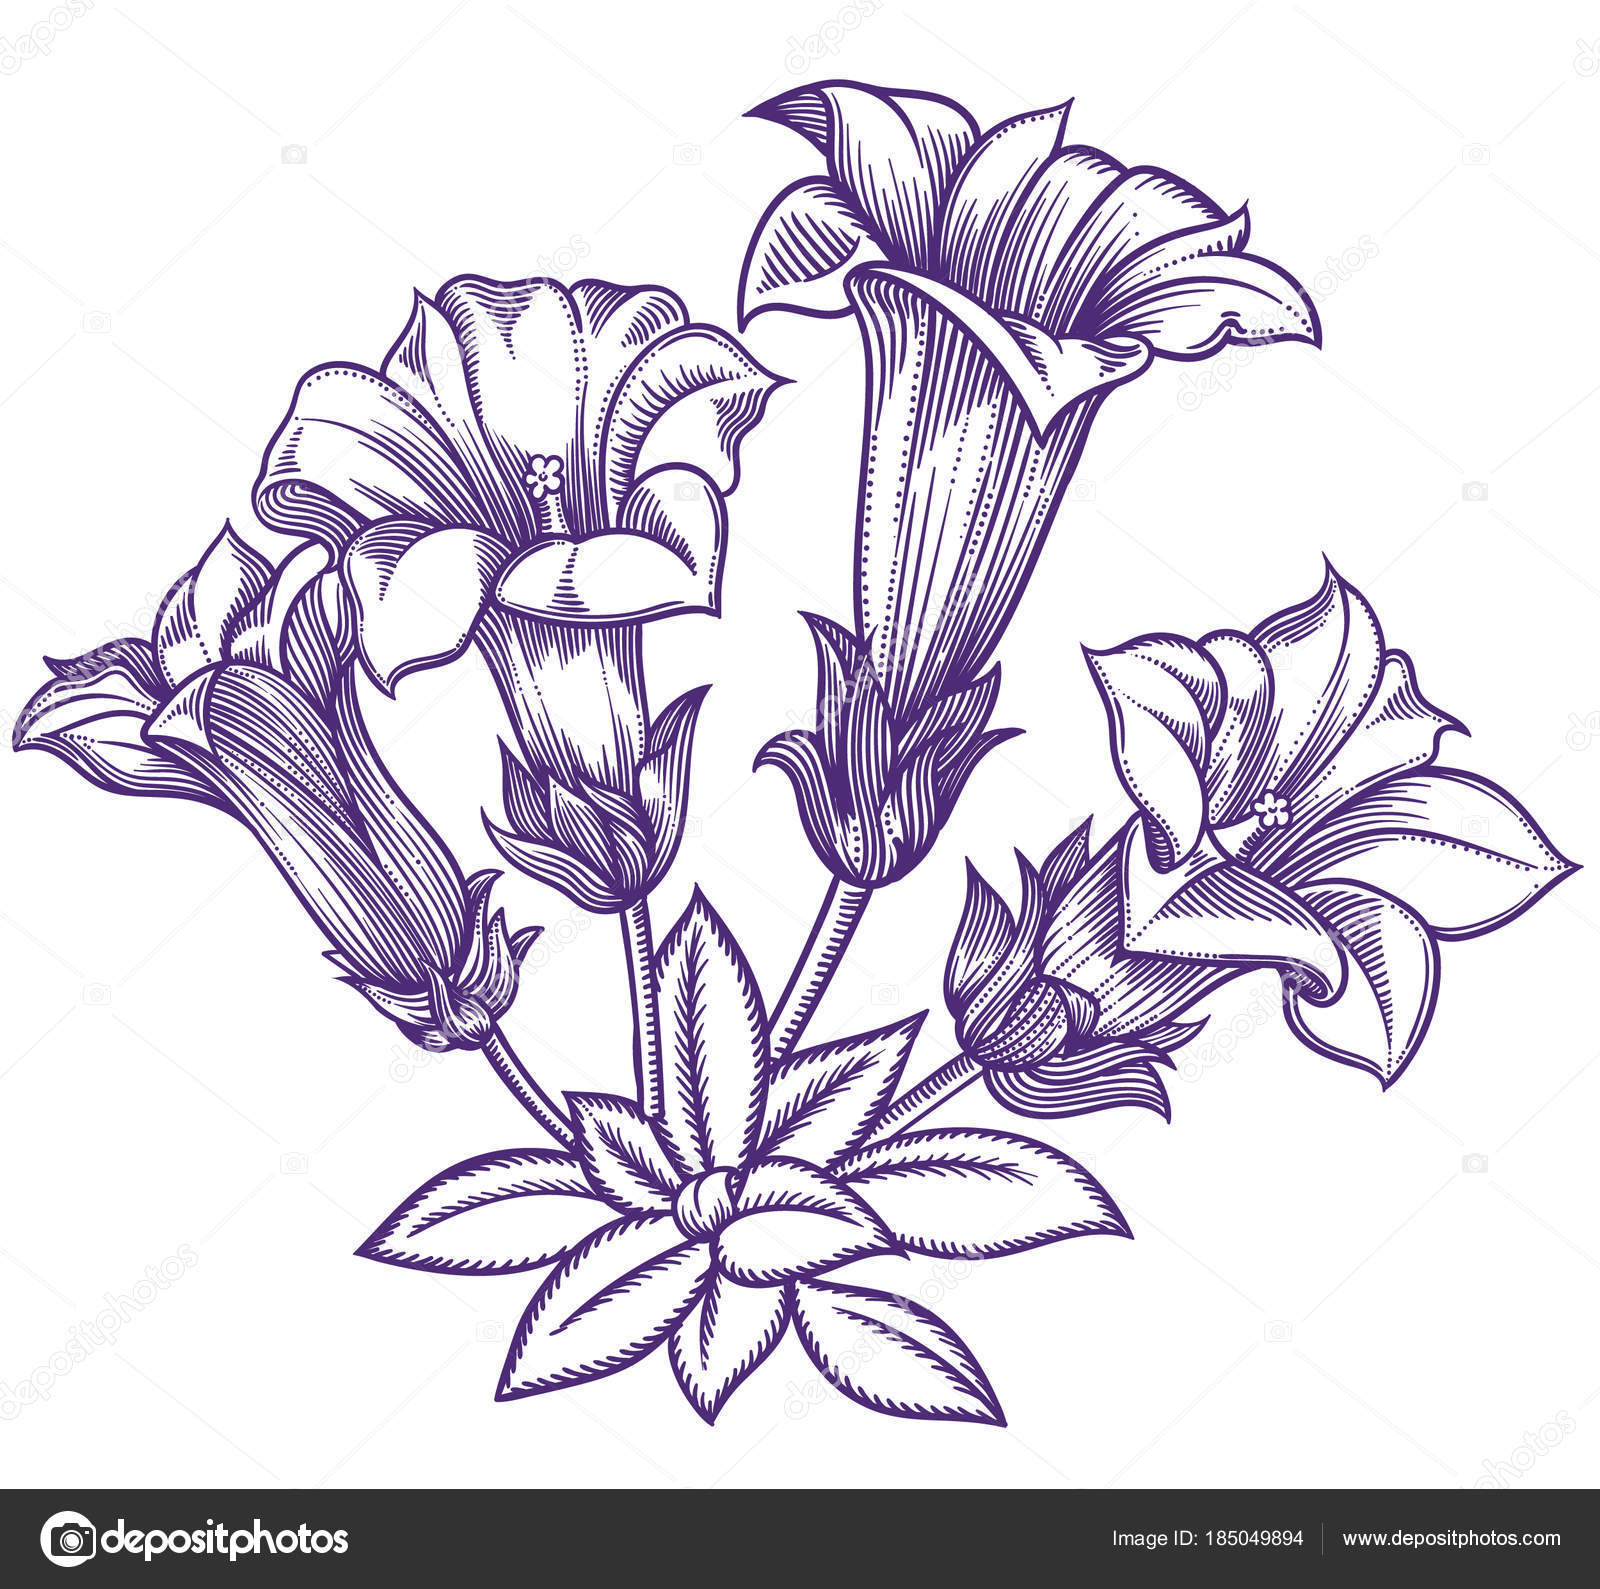 Blooming Forest Flowers Detailed Hand Drawn Vector Illustration Romantic Decorative Flower Drawing In Line